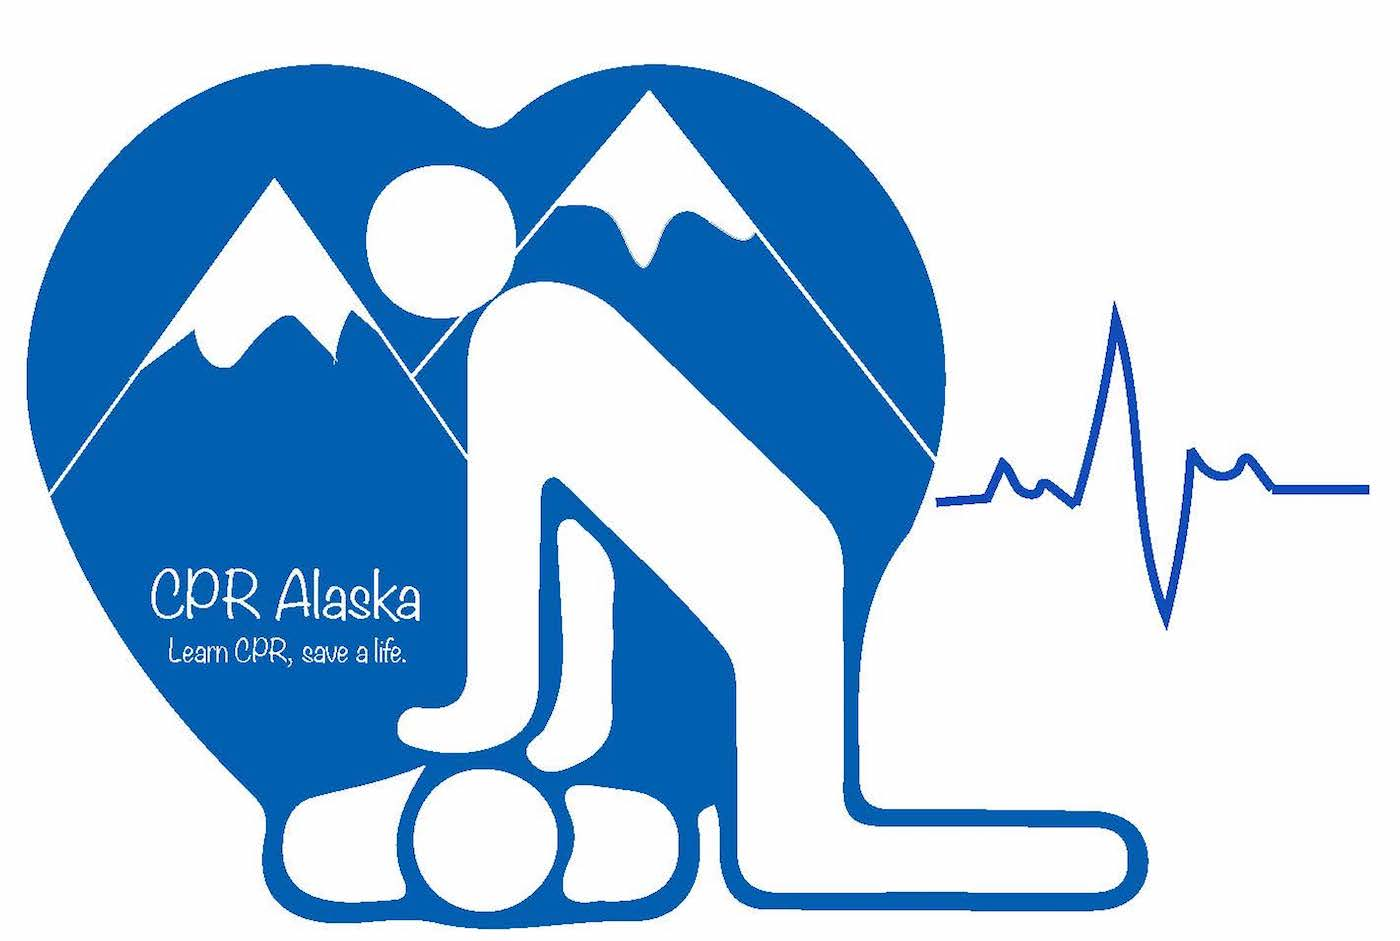 Cpr alaska cpr first aid training register now xflitez Gallery